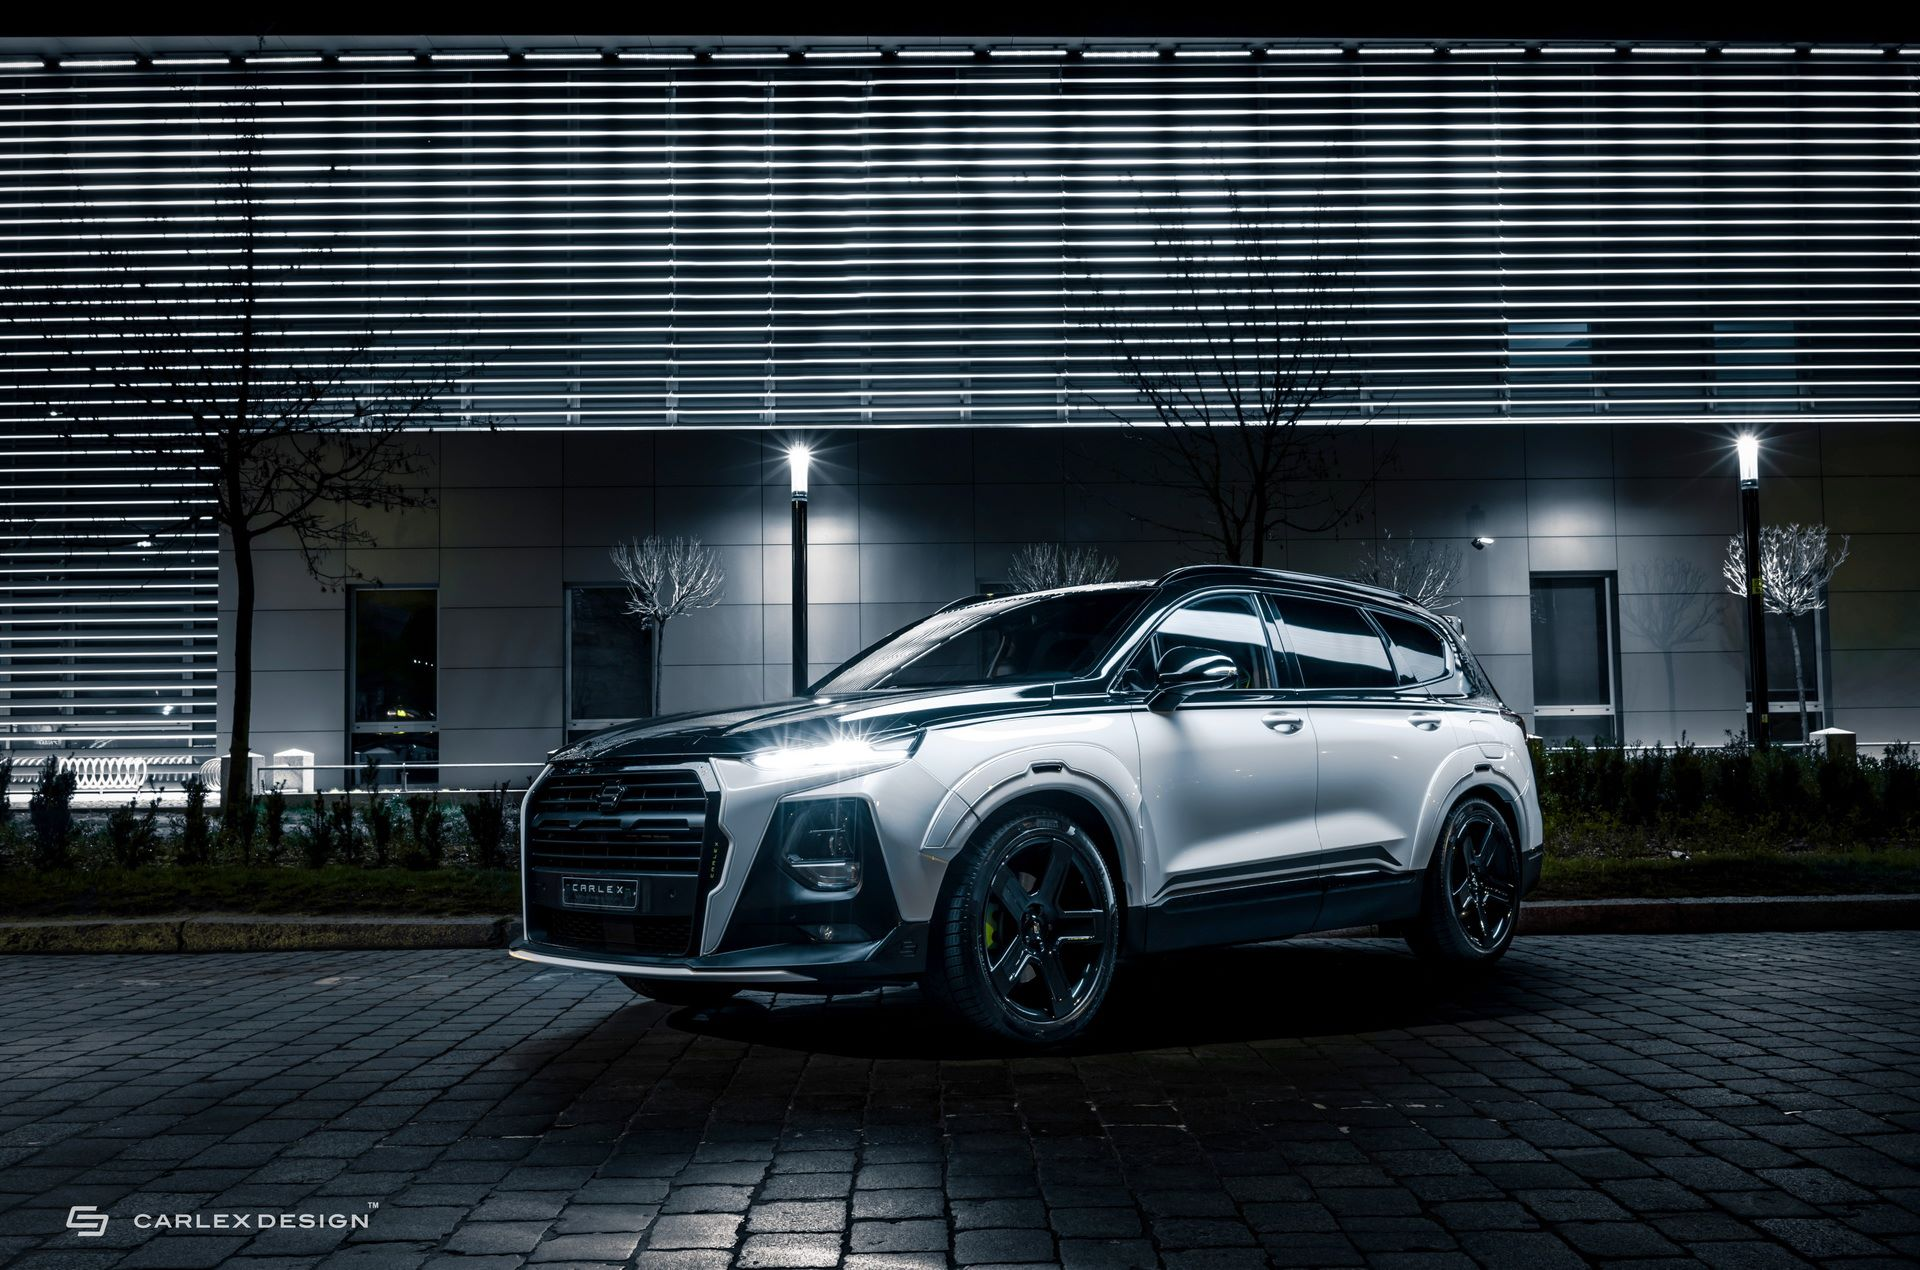 Hyundai-Santa-Fe-Urban-Edition-by-Carlex-Design-11